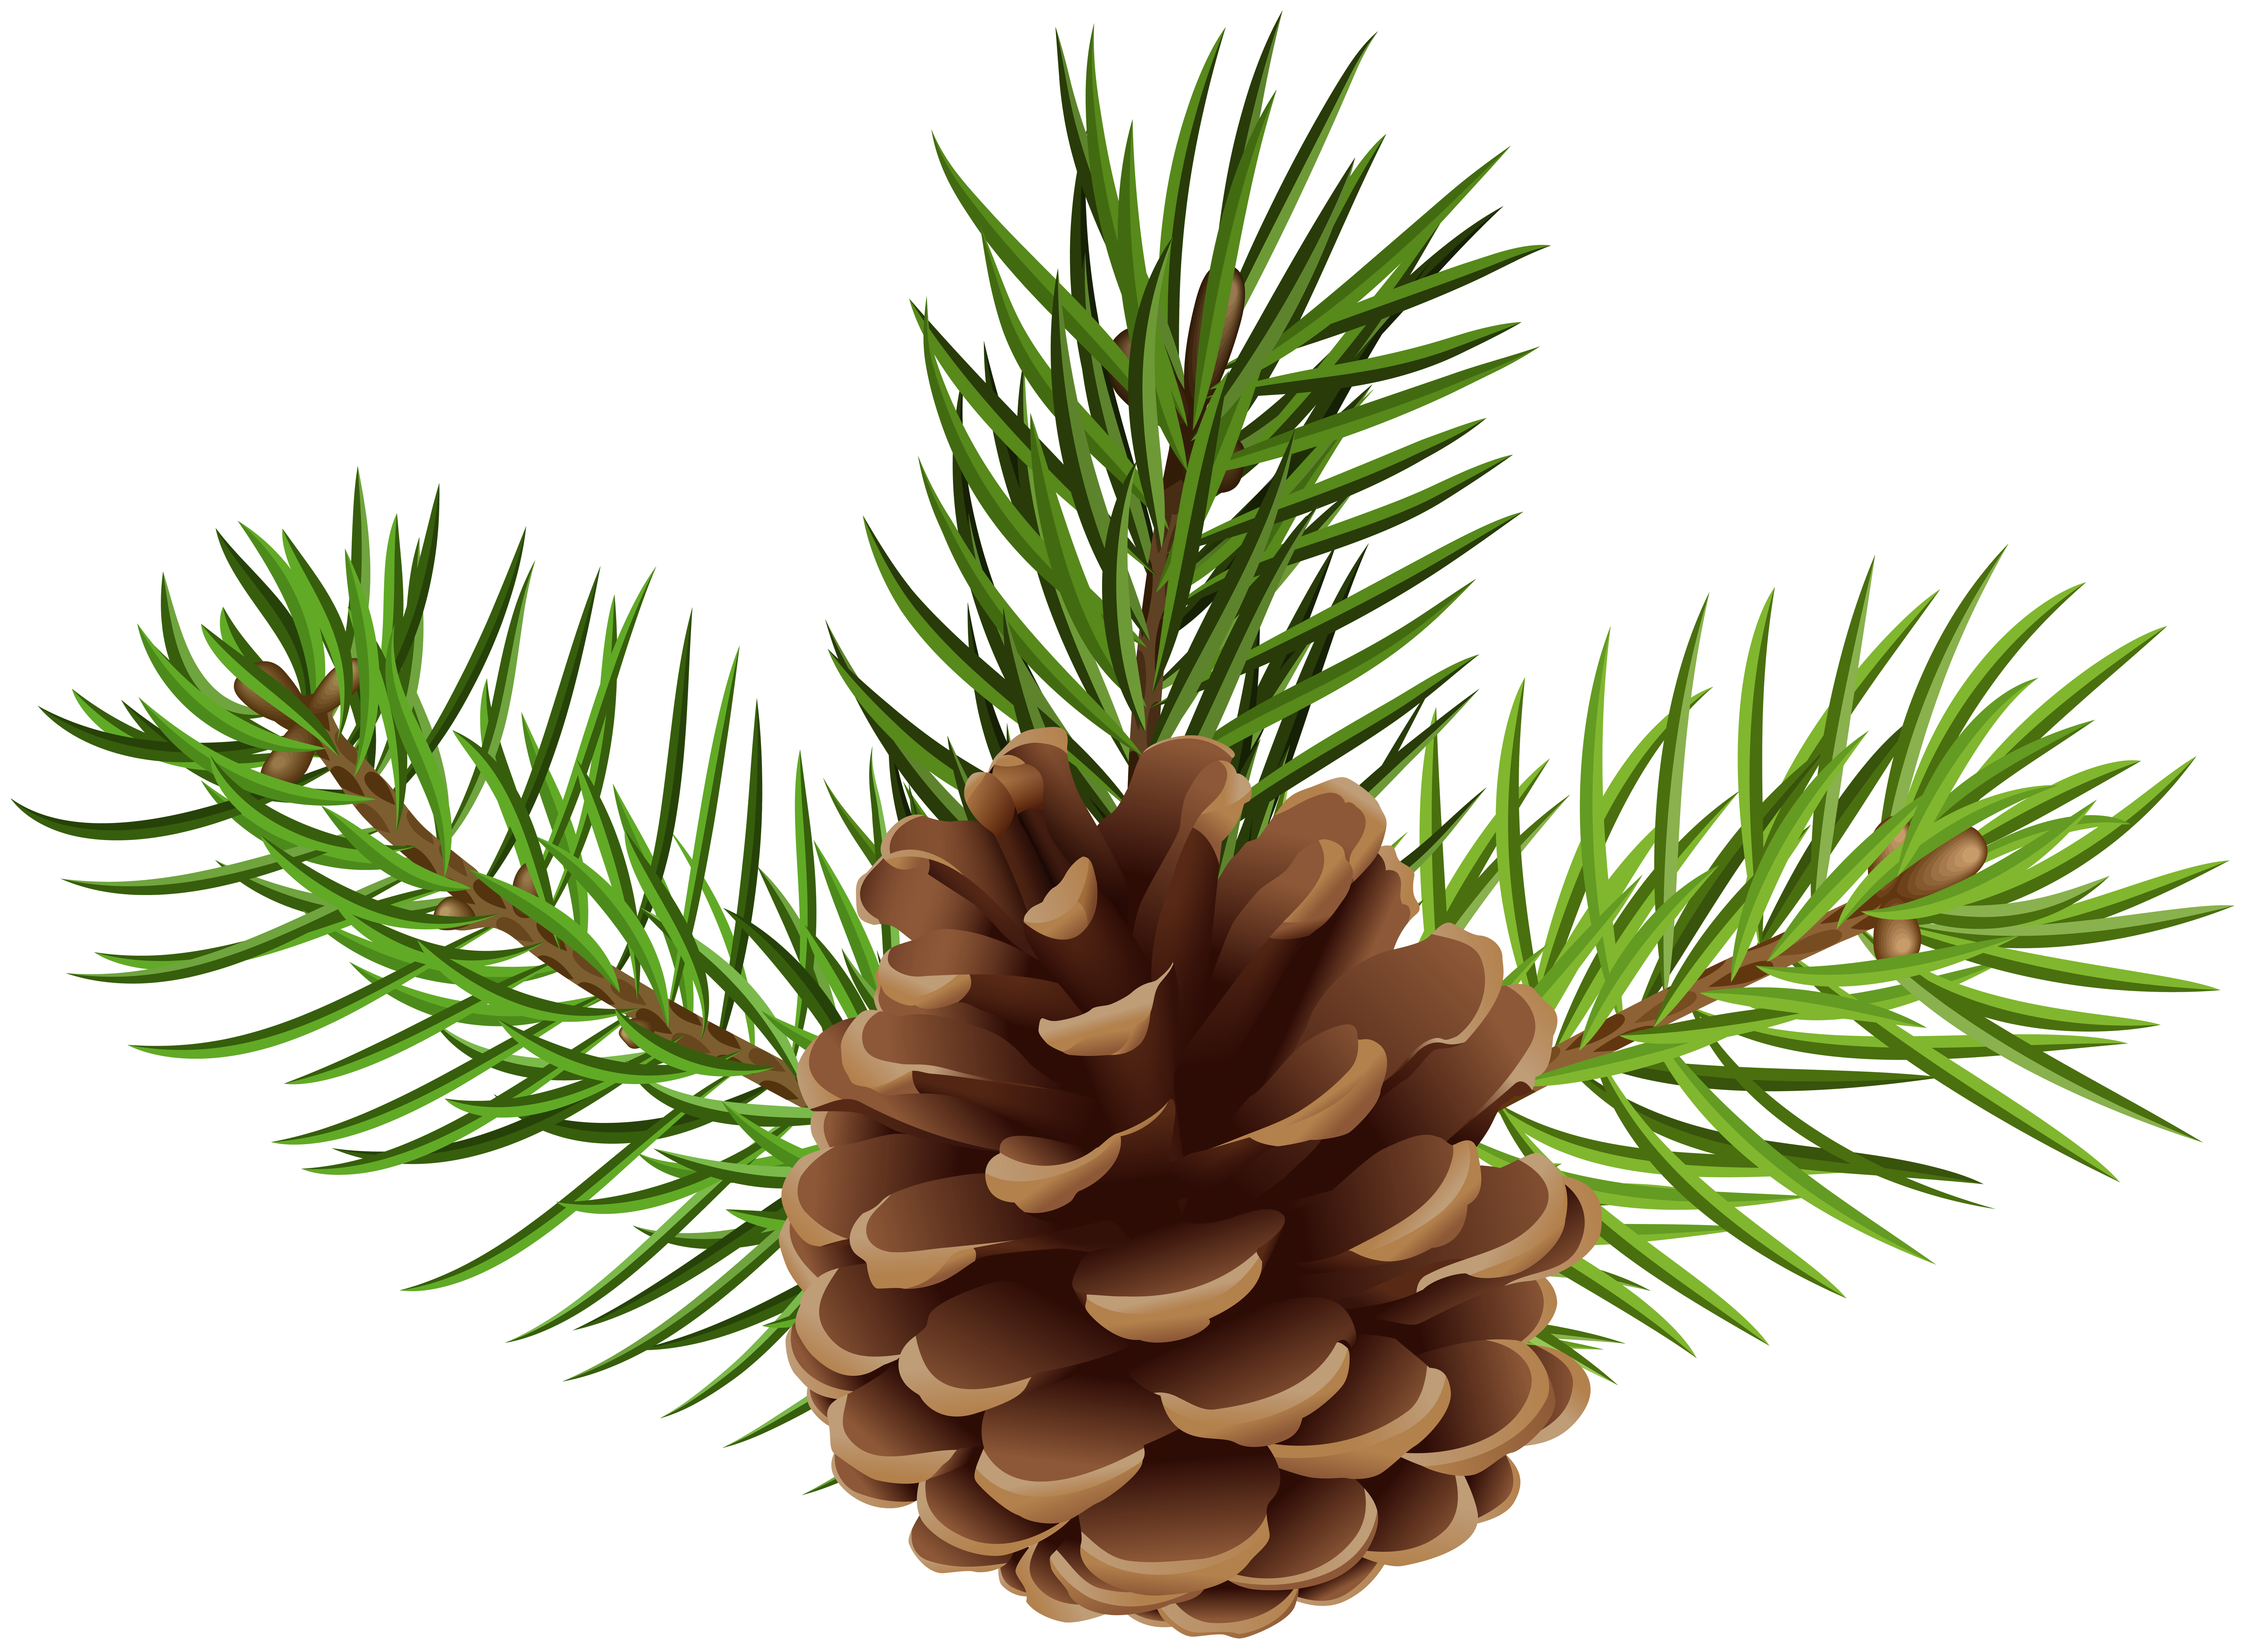 Pine Cone PNG Clip Art Image.